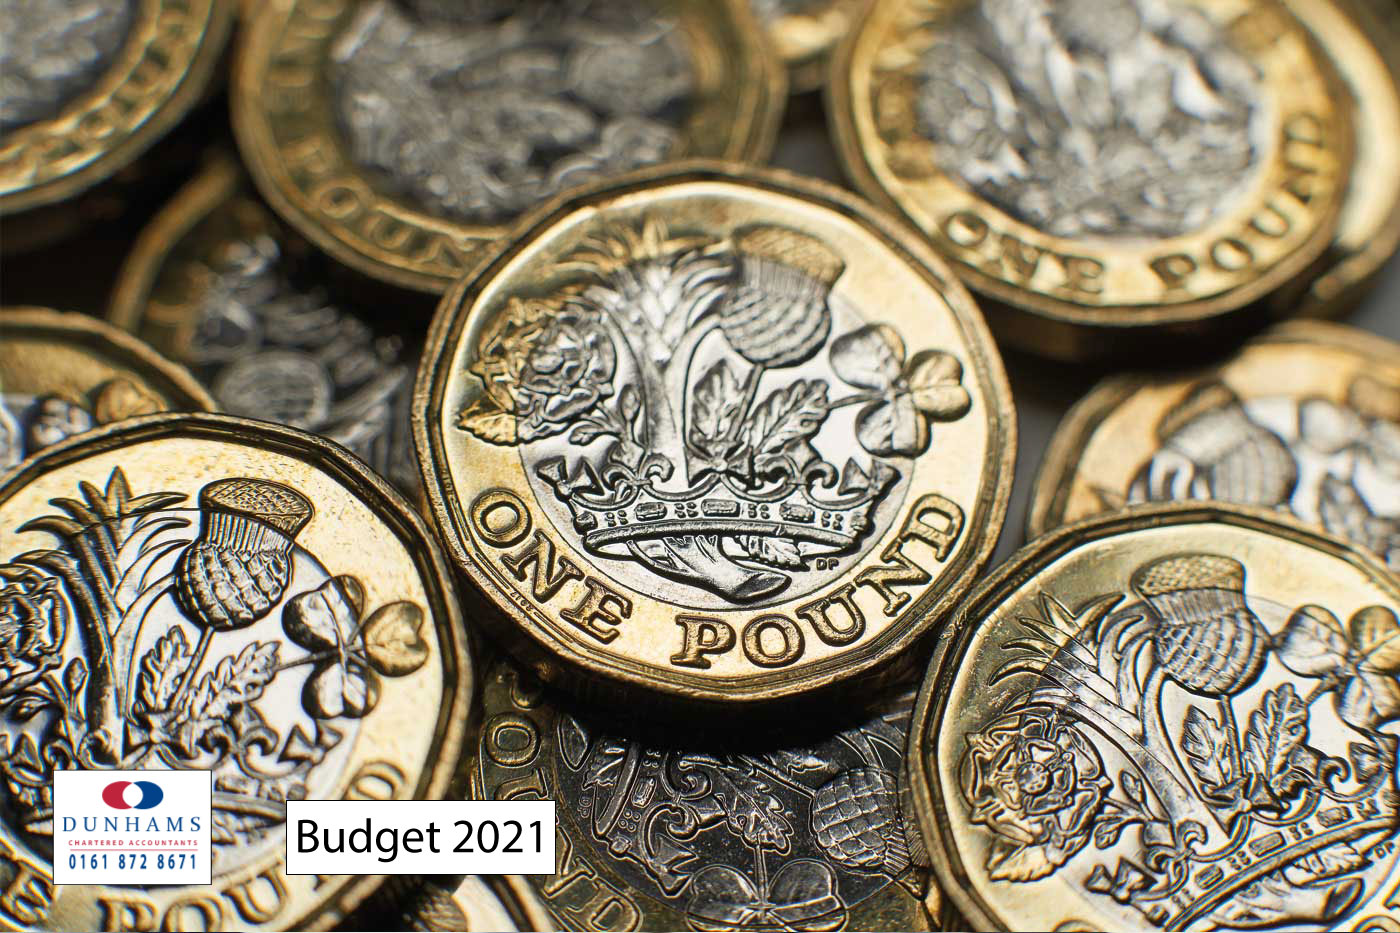 Dunhams Budget Review 2021 - Capital Taxes Overview.